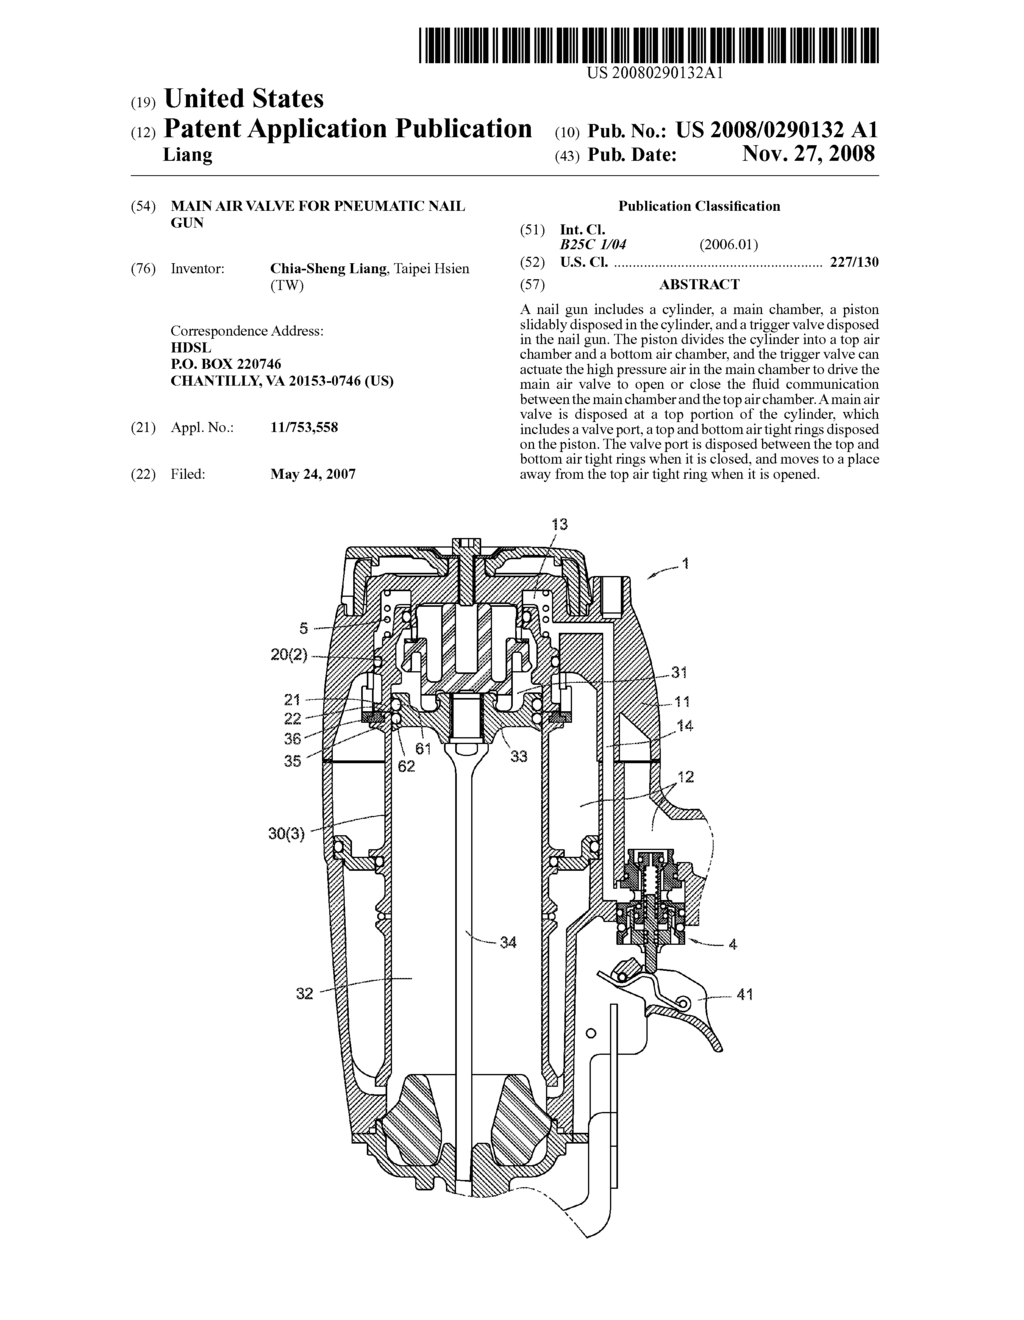 Main Air Valve For Pneumatic Nail Gun Diagram Schematic And Image 01 Case 220 Wiring